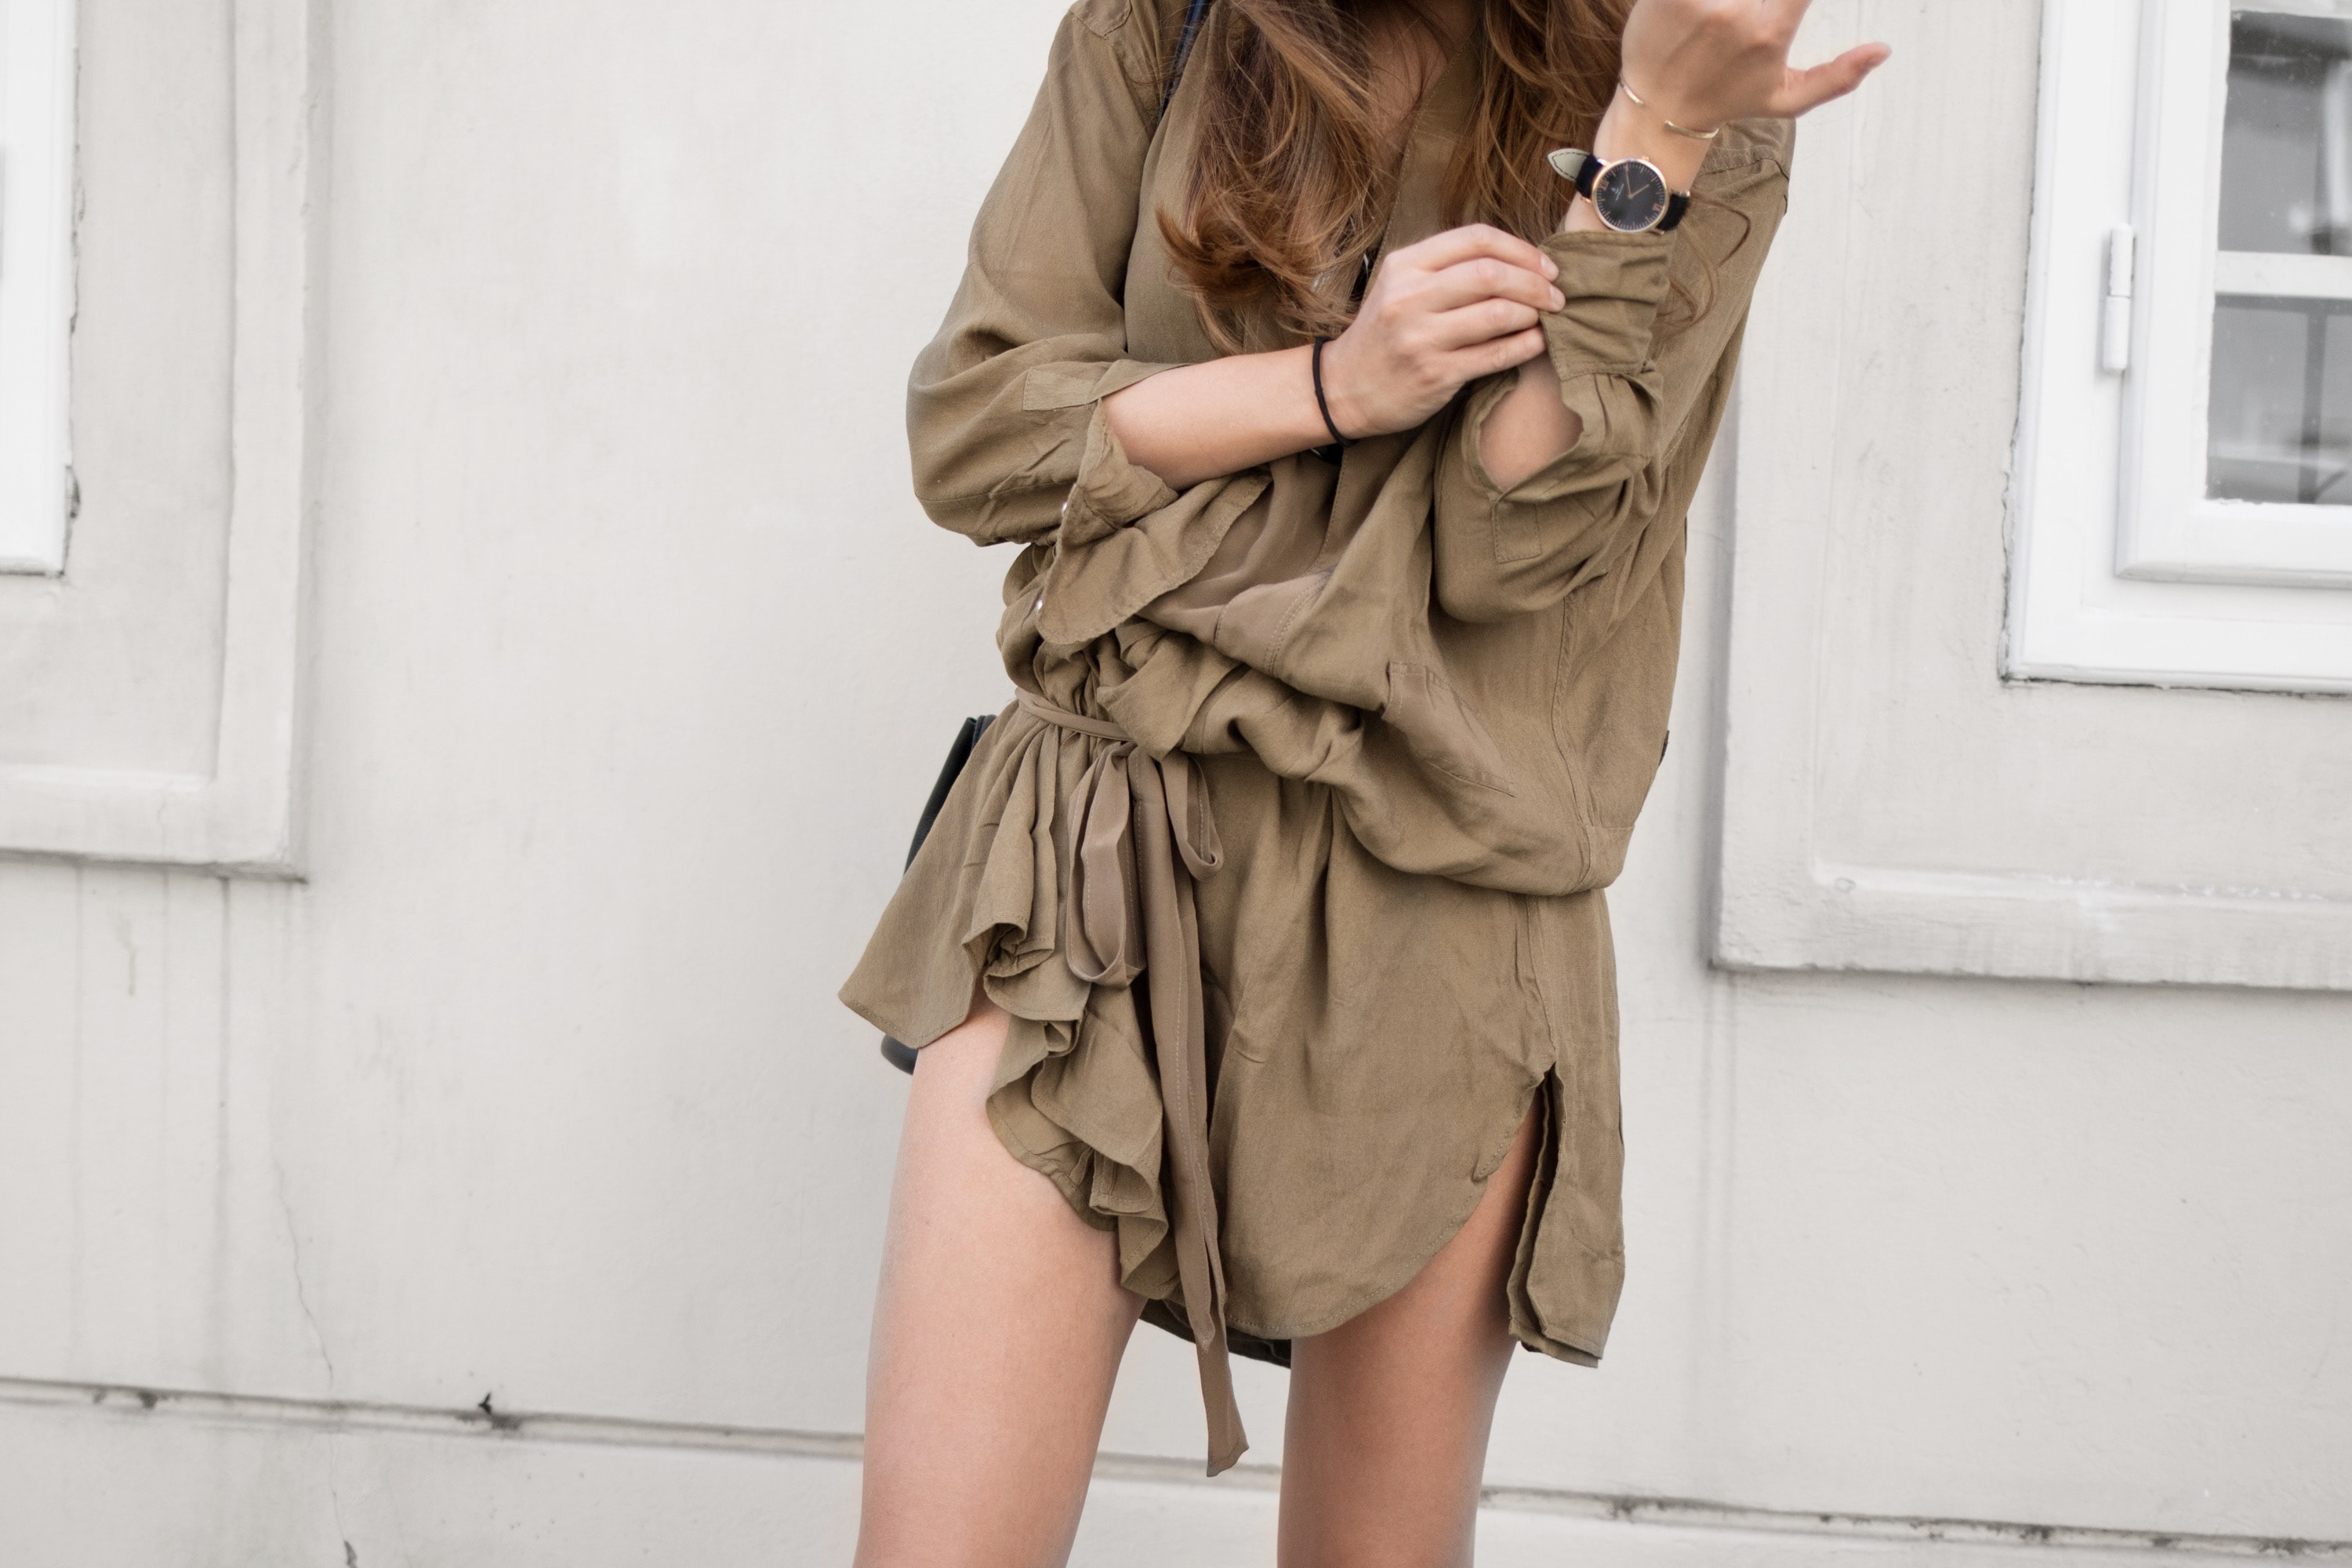 magali_pascal_khaki_dress_lenamarias3